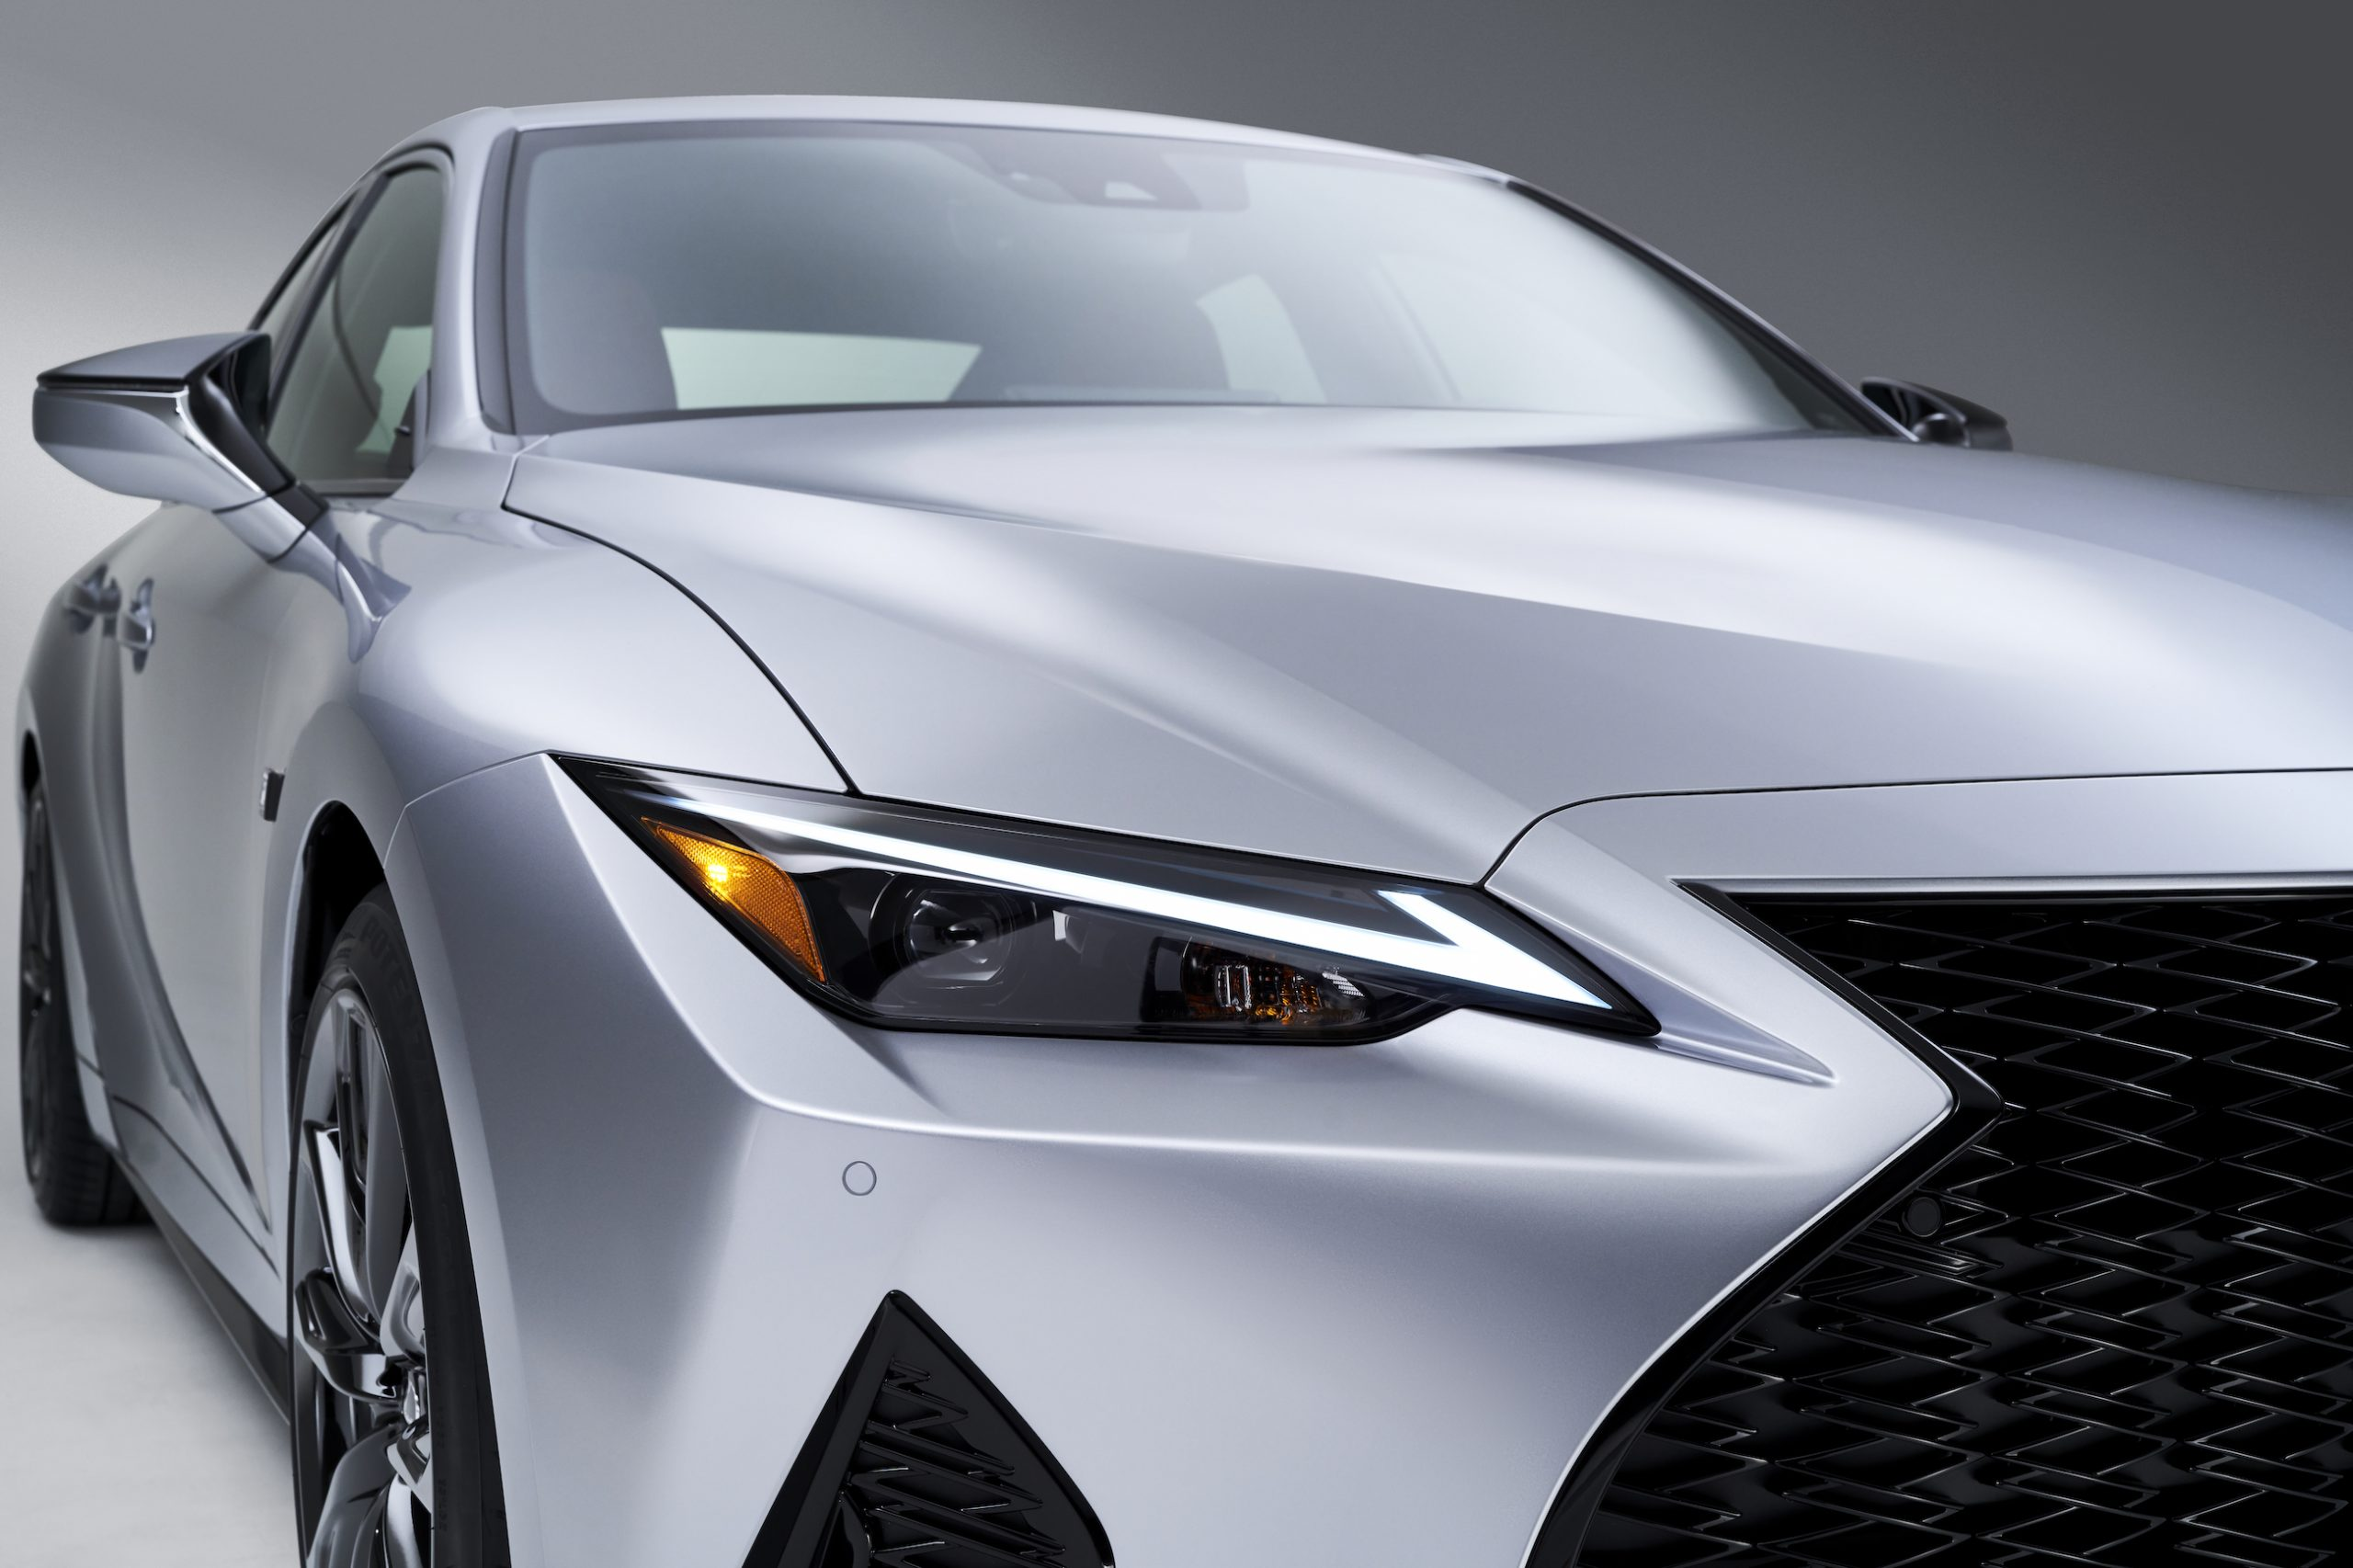 2021 Lexus IS 350 F Sport headlight